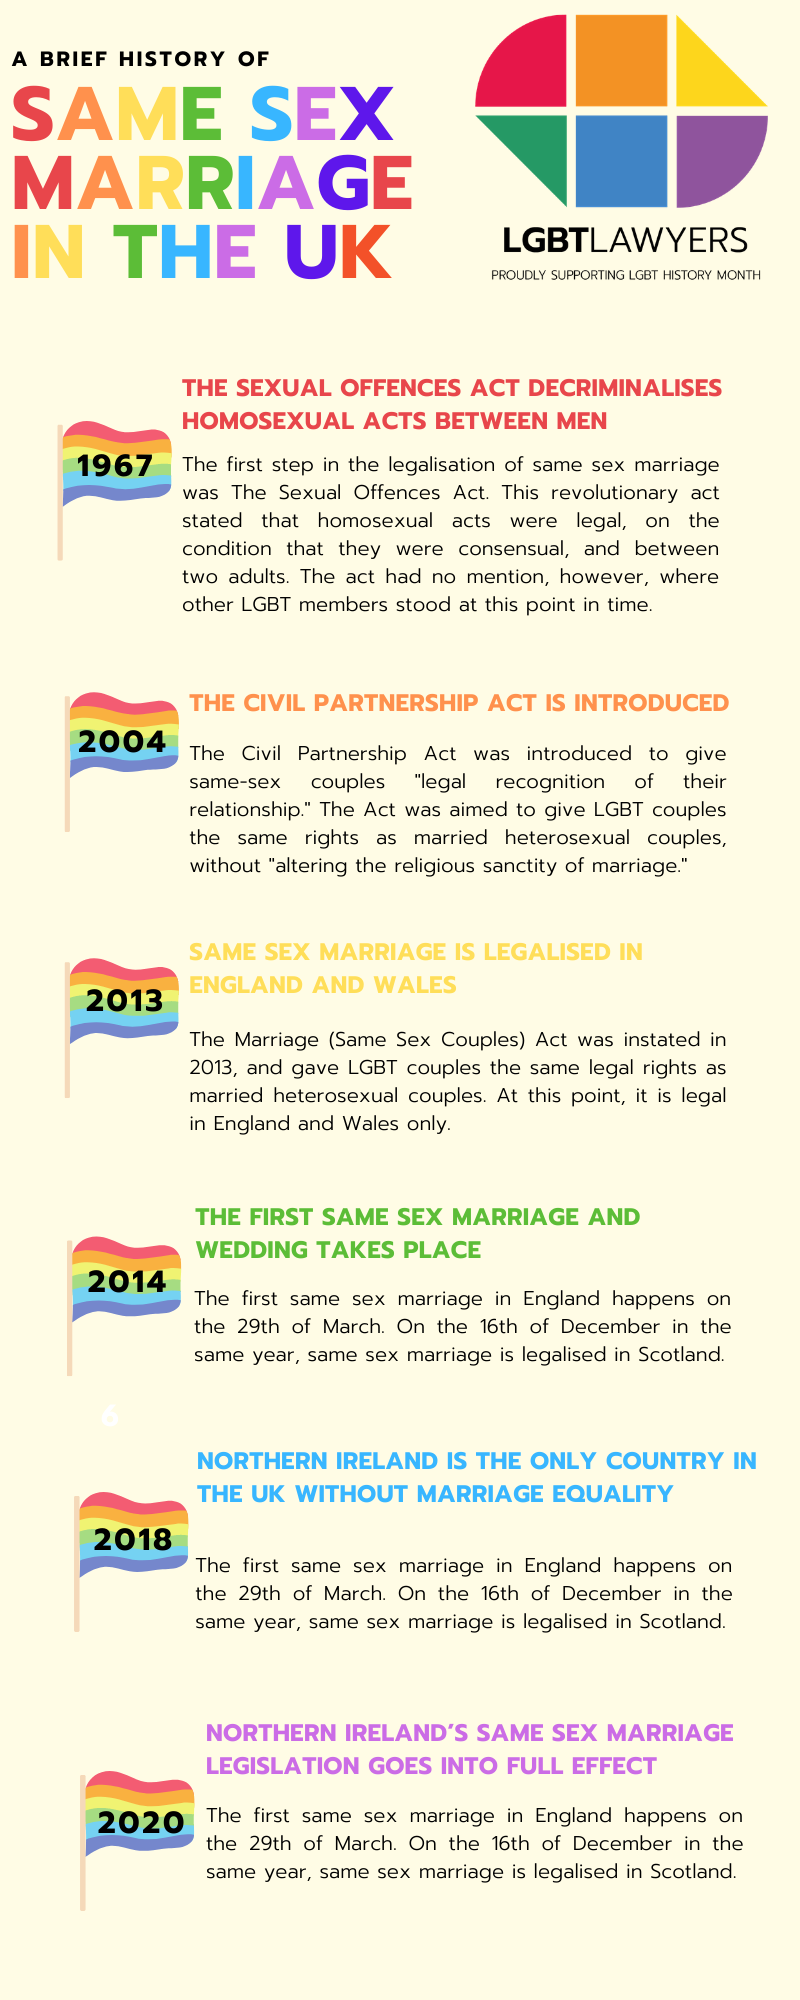 LGBT Lawyers A Brief History of The Legalisation of Same Sex Marriage in The UK